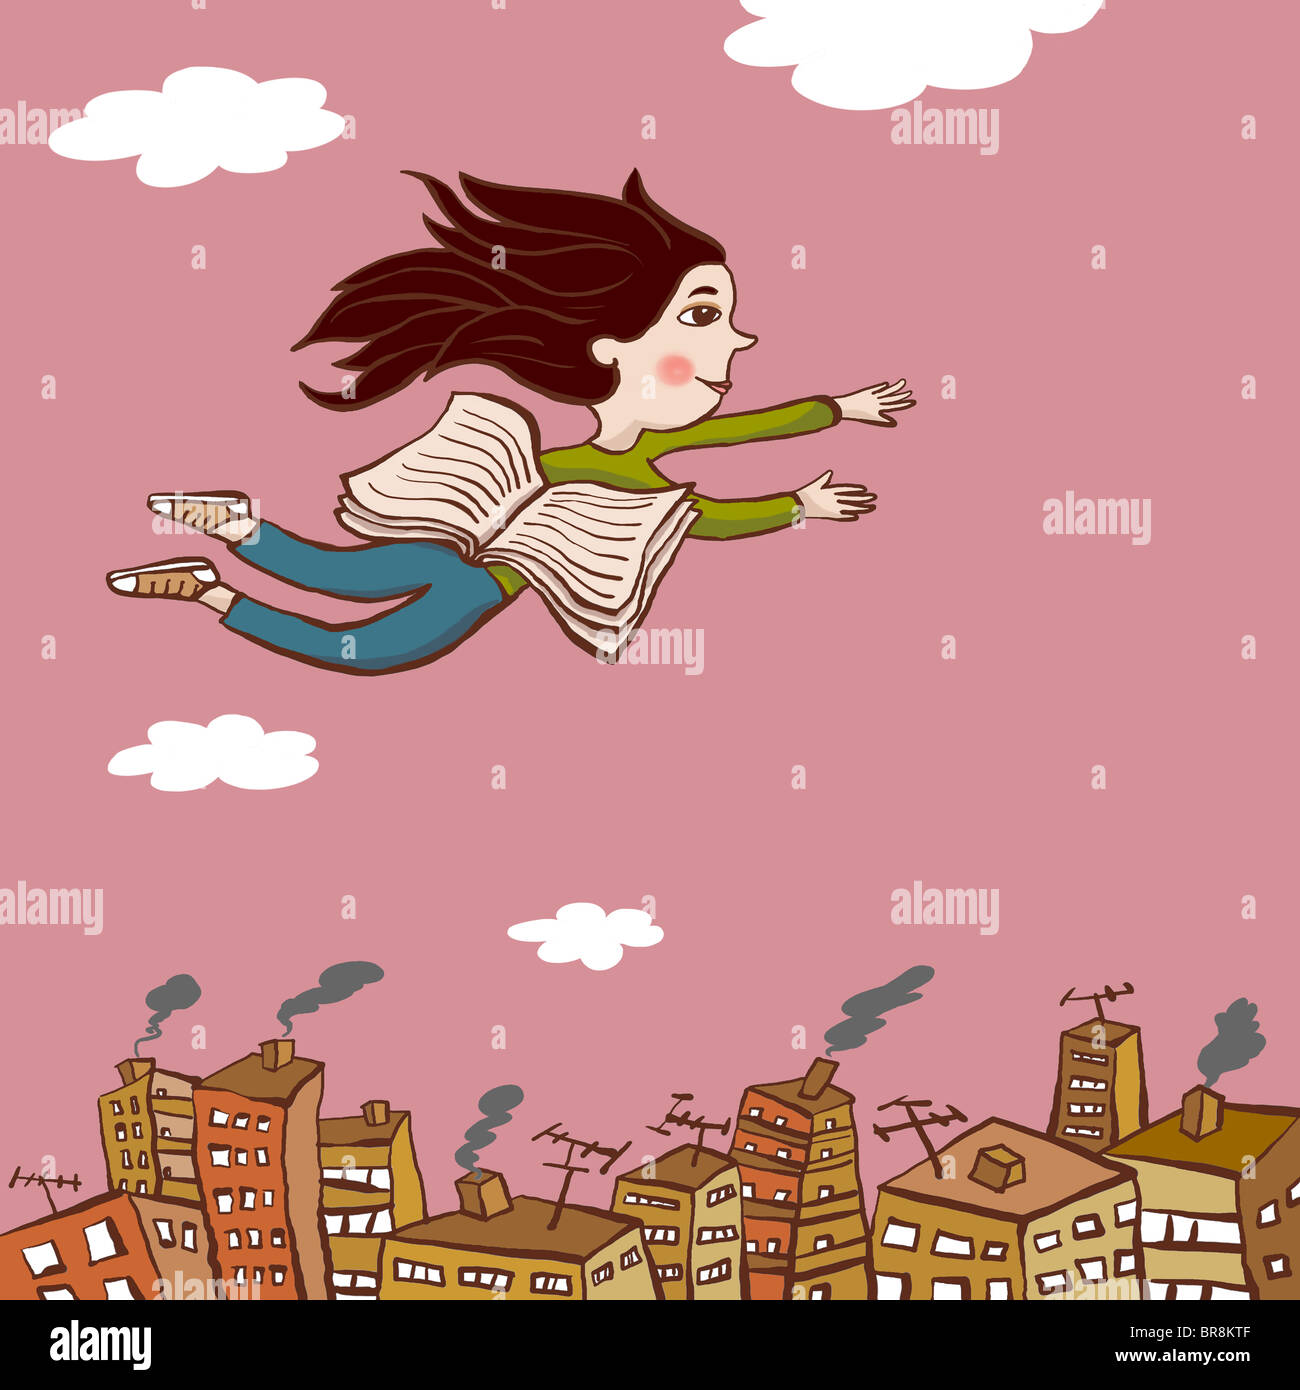 A drawing of a young girl flying over a city with the pages of a book acting as wings - Stock Image